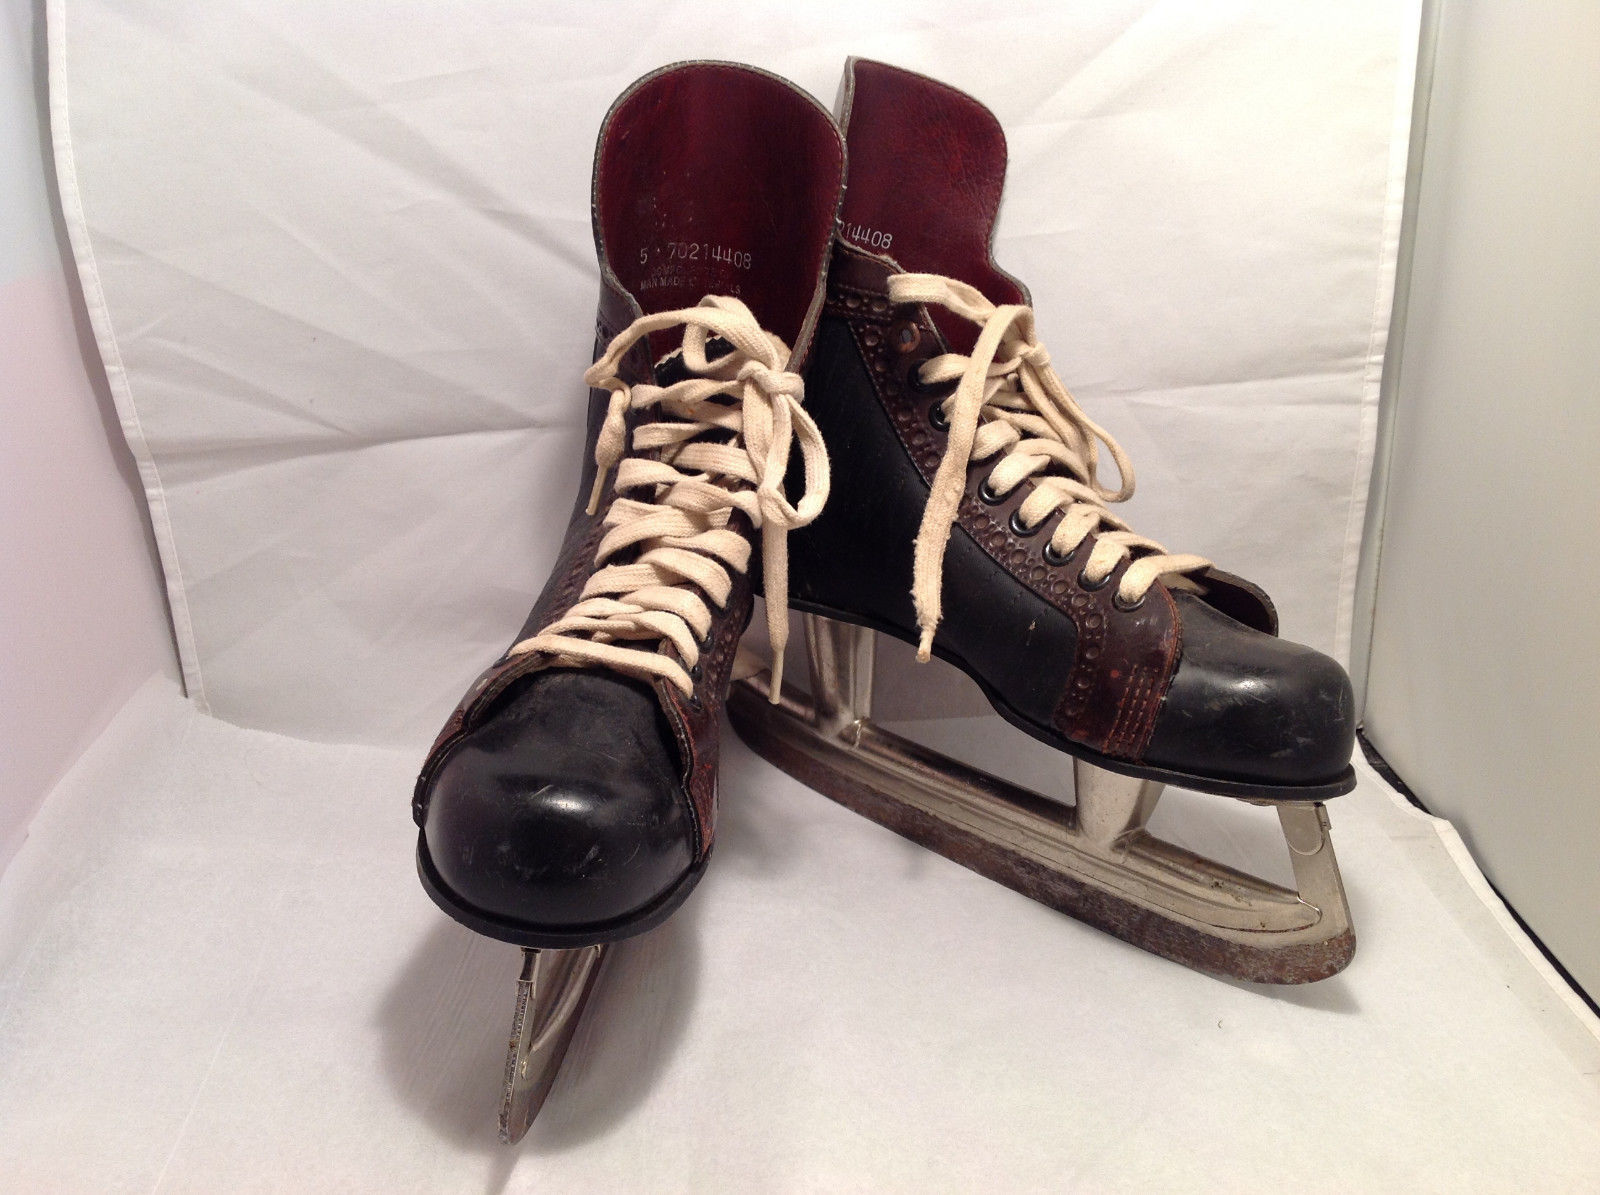 Wildcat Vintage Unisex Ice Skates Black w/ Brown Brogue Trim Cream Laces Size 5